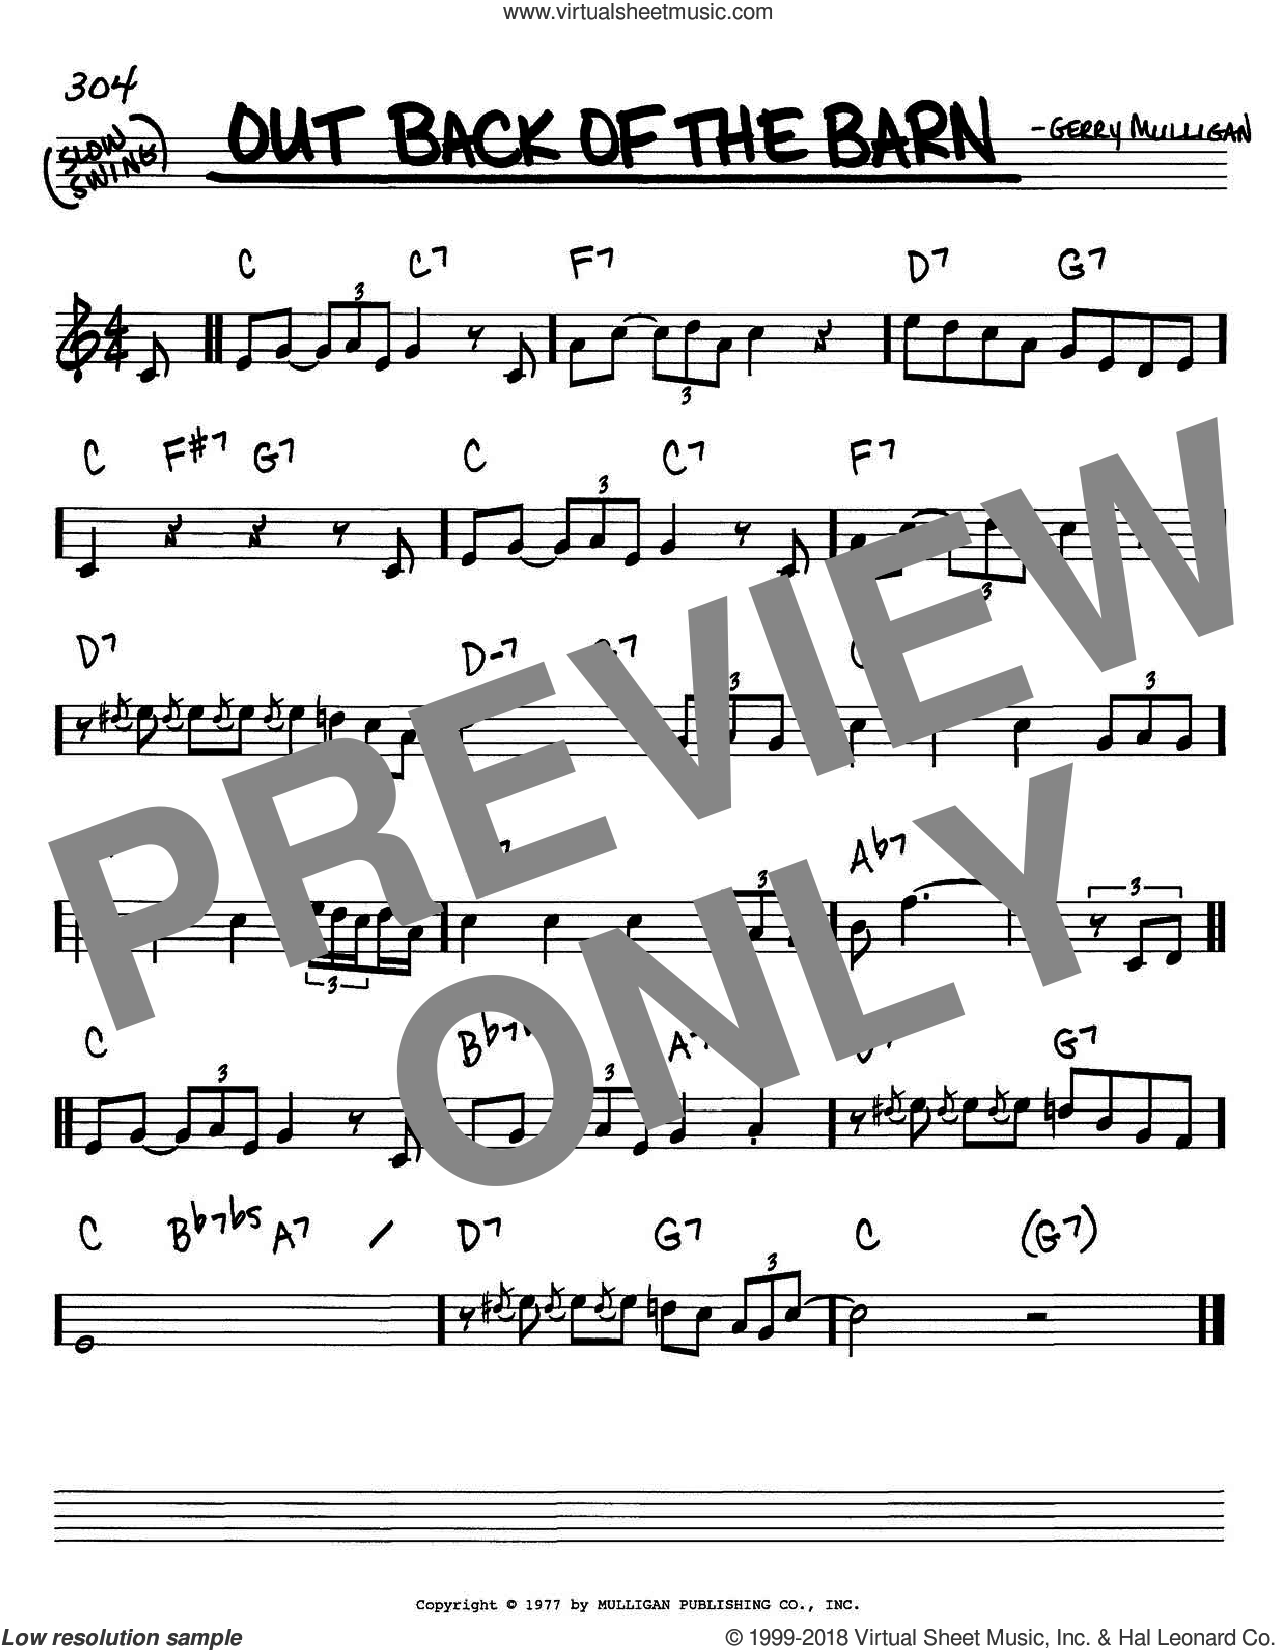 Out Back Of The Barn sheet music for voice and other instruments (C) by Gerry Mulligan. Score Image Preview.